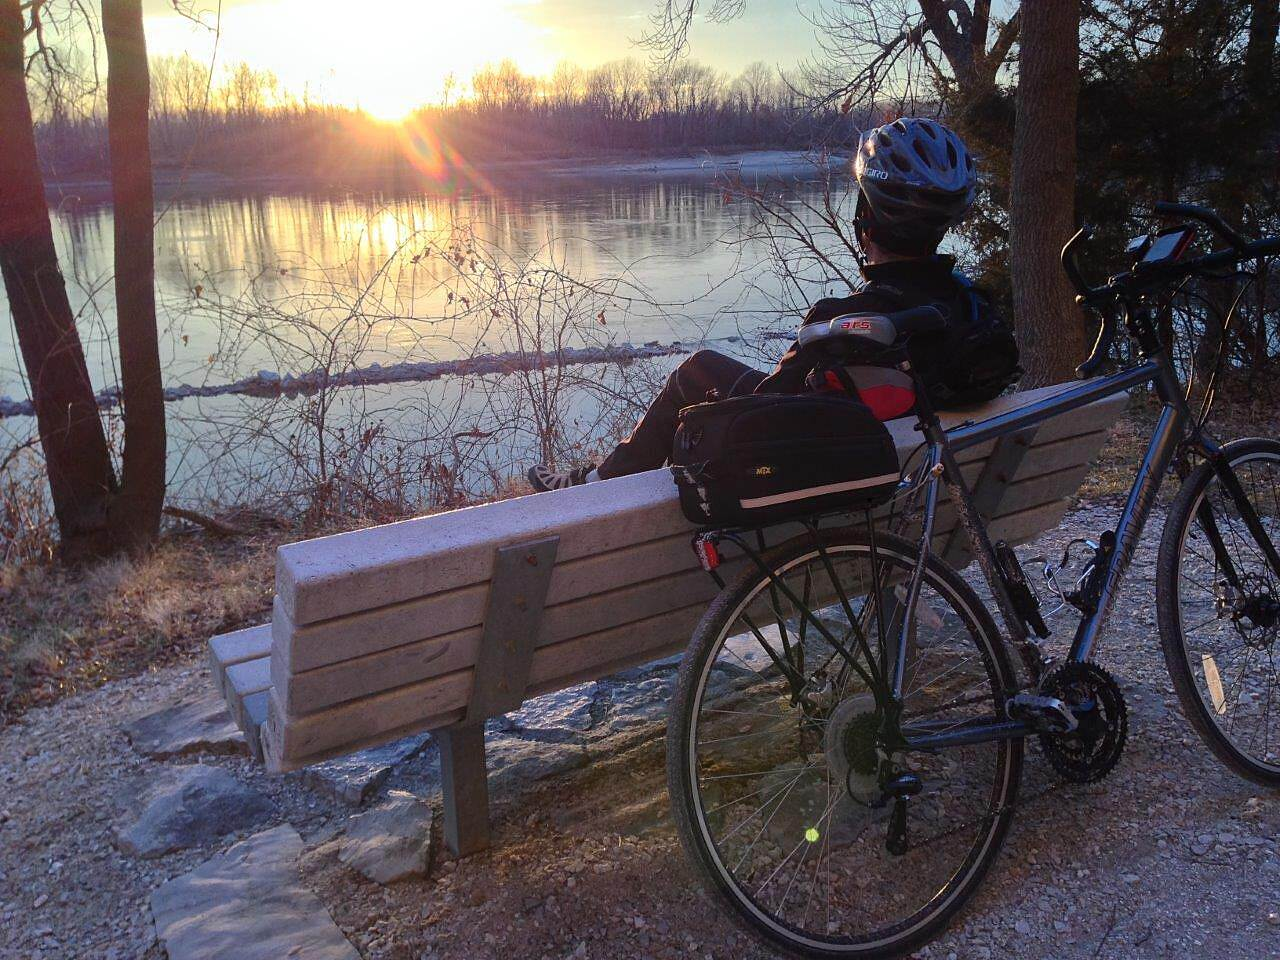 Katy Trail State Park Sunset Along The Muddy Mo' The end to a perfect day's ride!